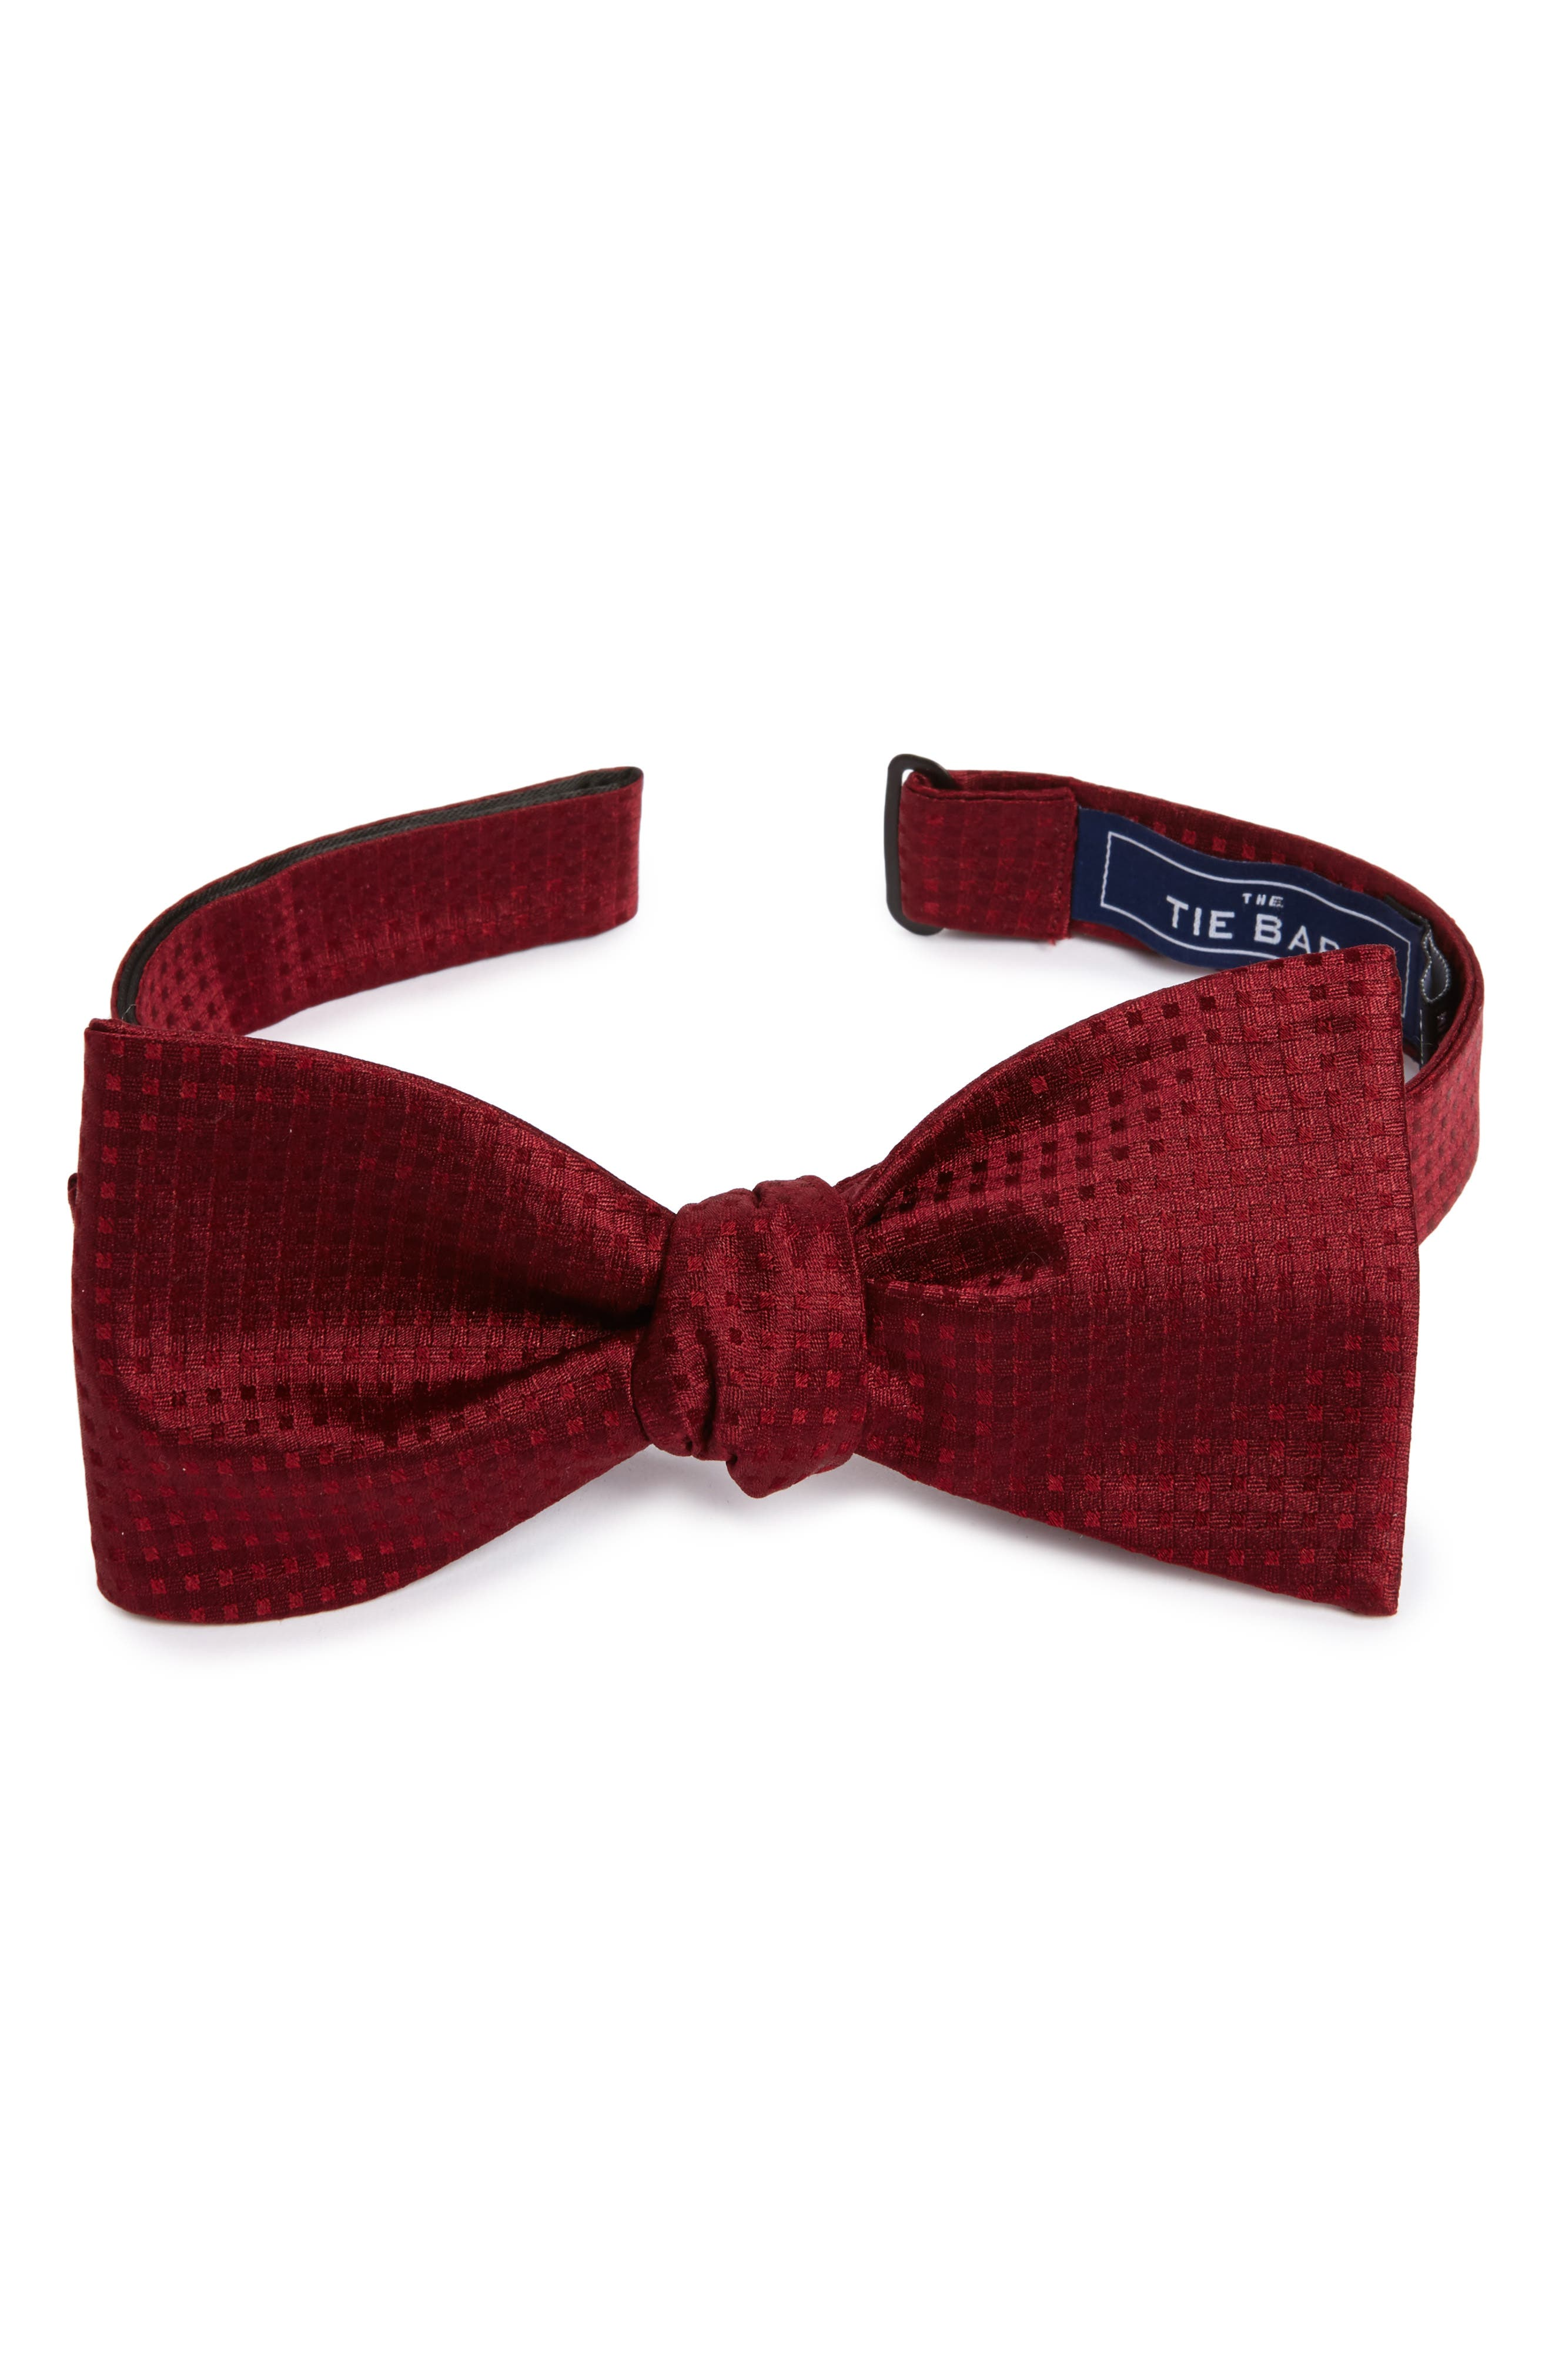 Alternate Image 1 Selected - The Tie Bar Check Mates Silk Bow Tie